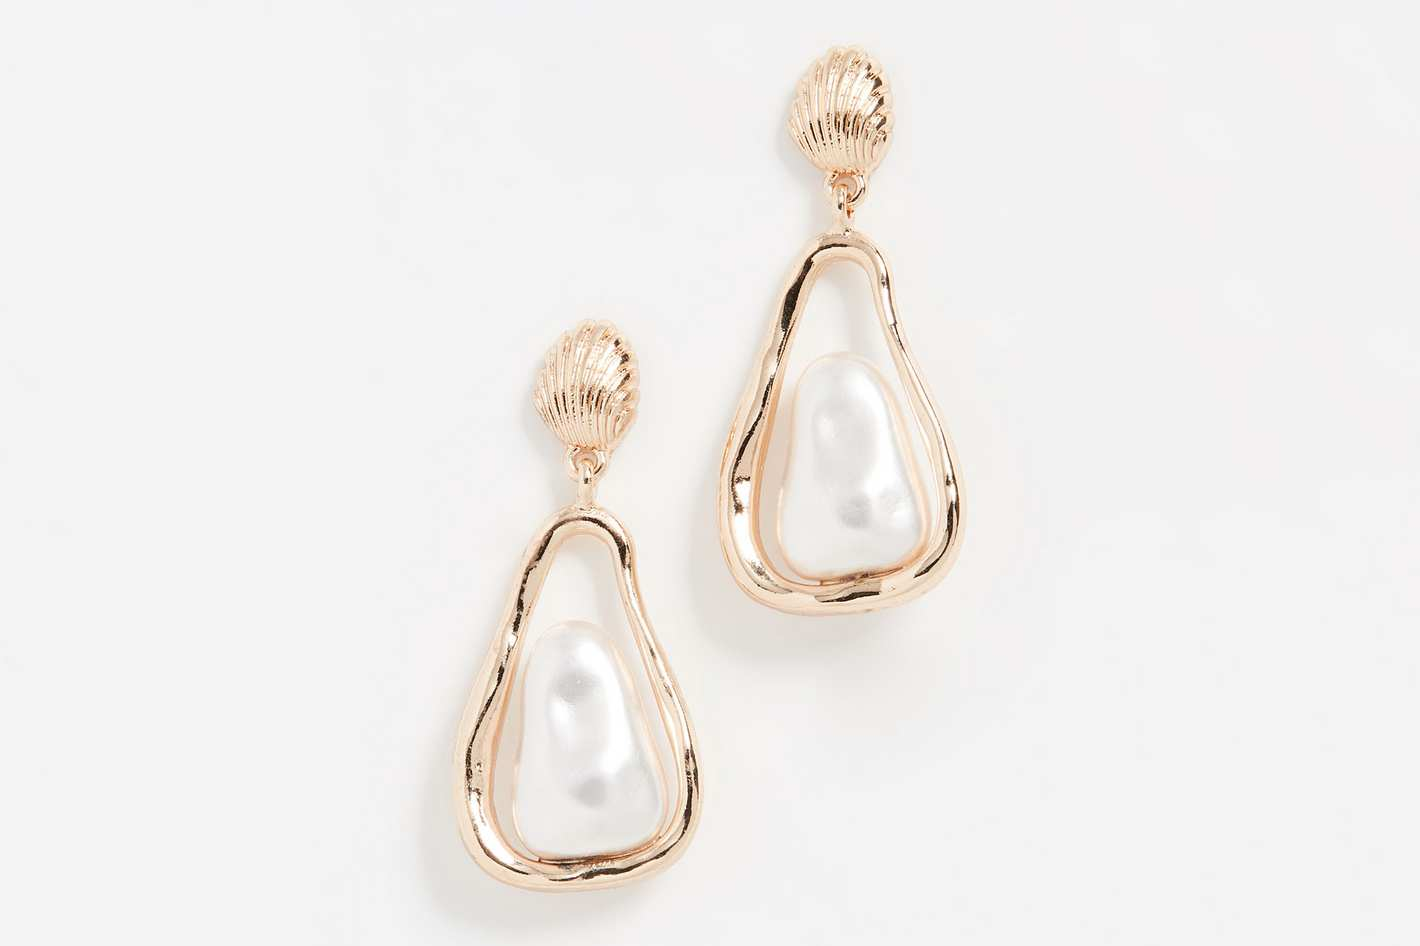 Shashi Mykonos Earrings